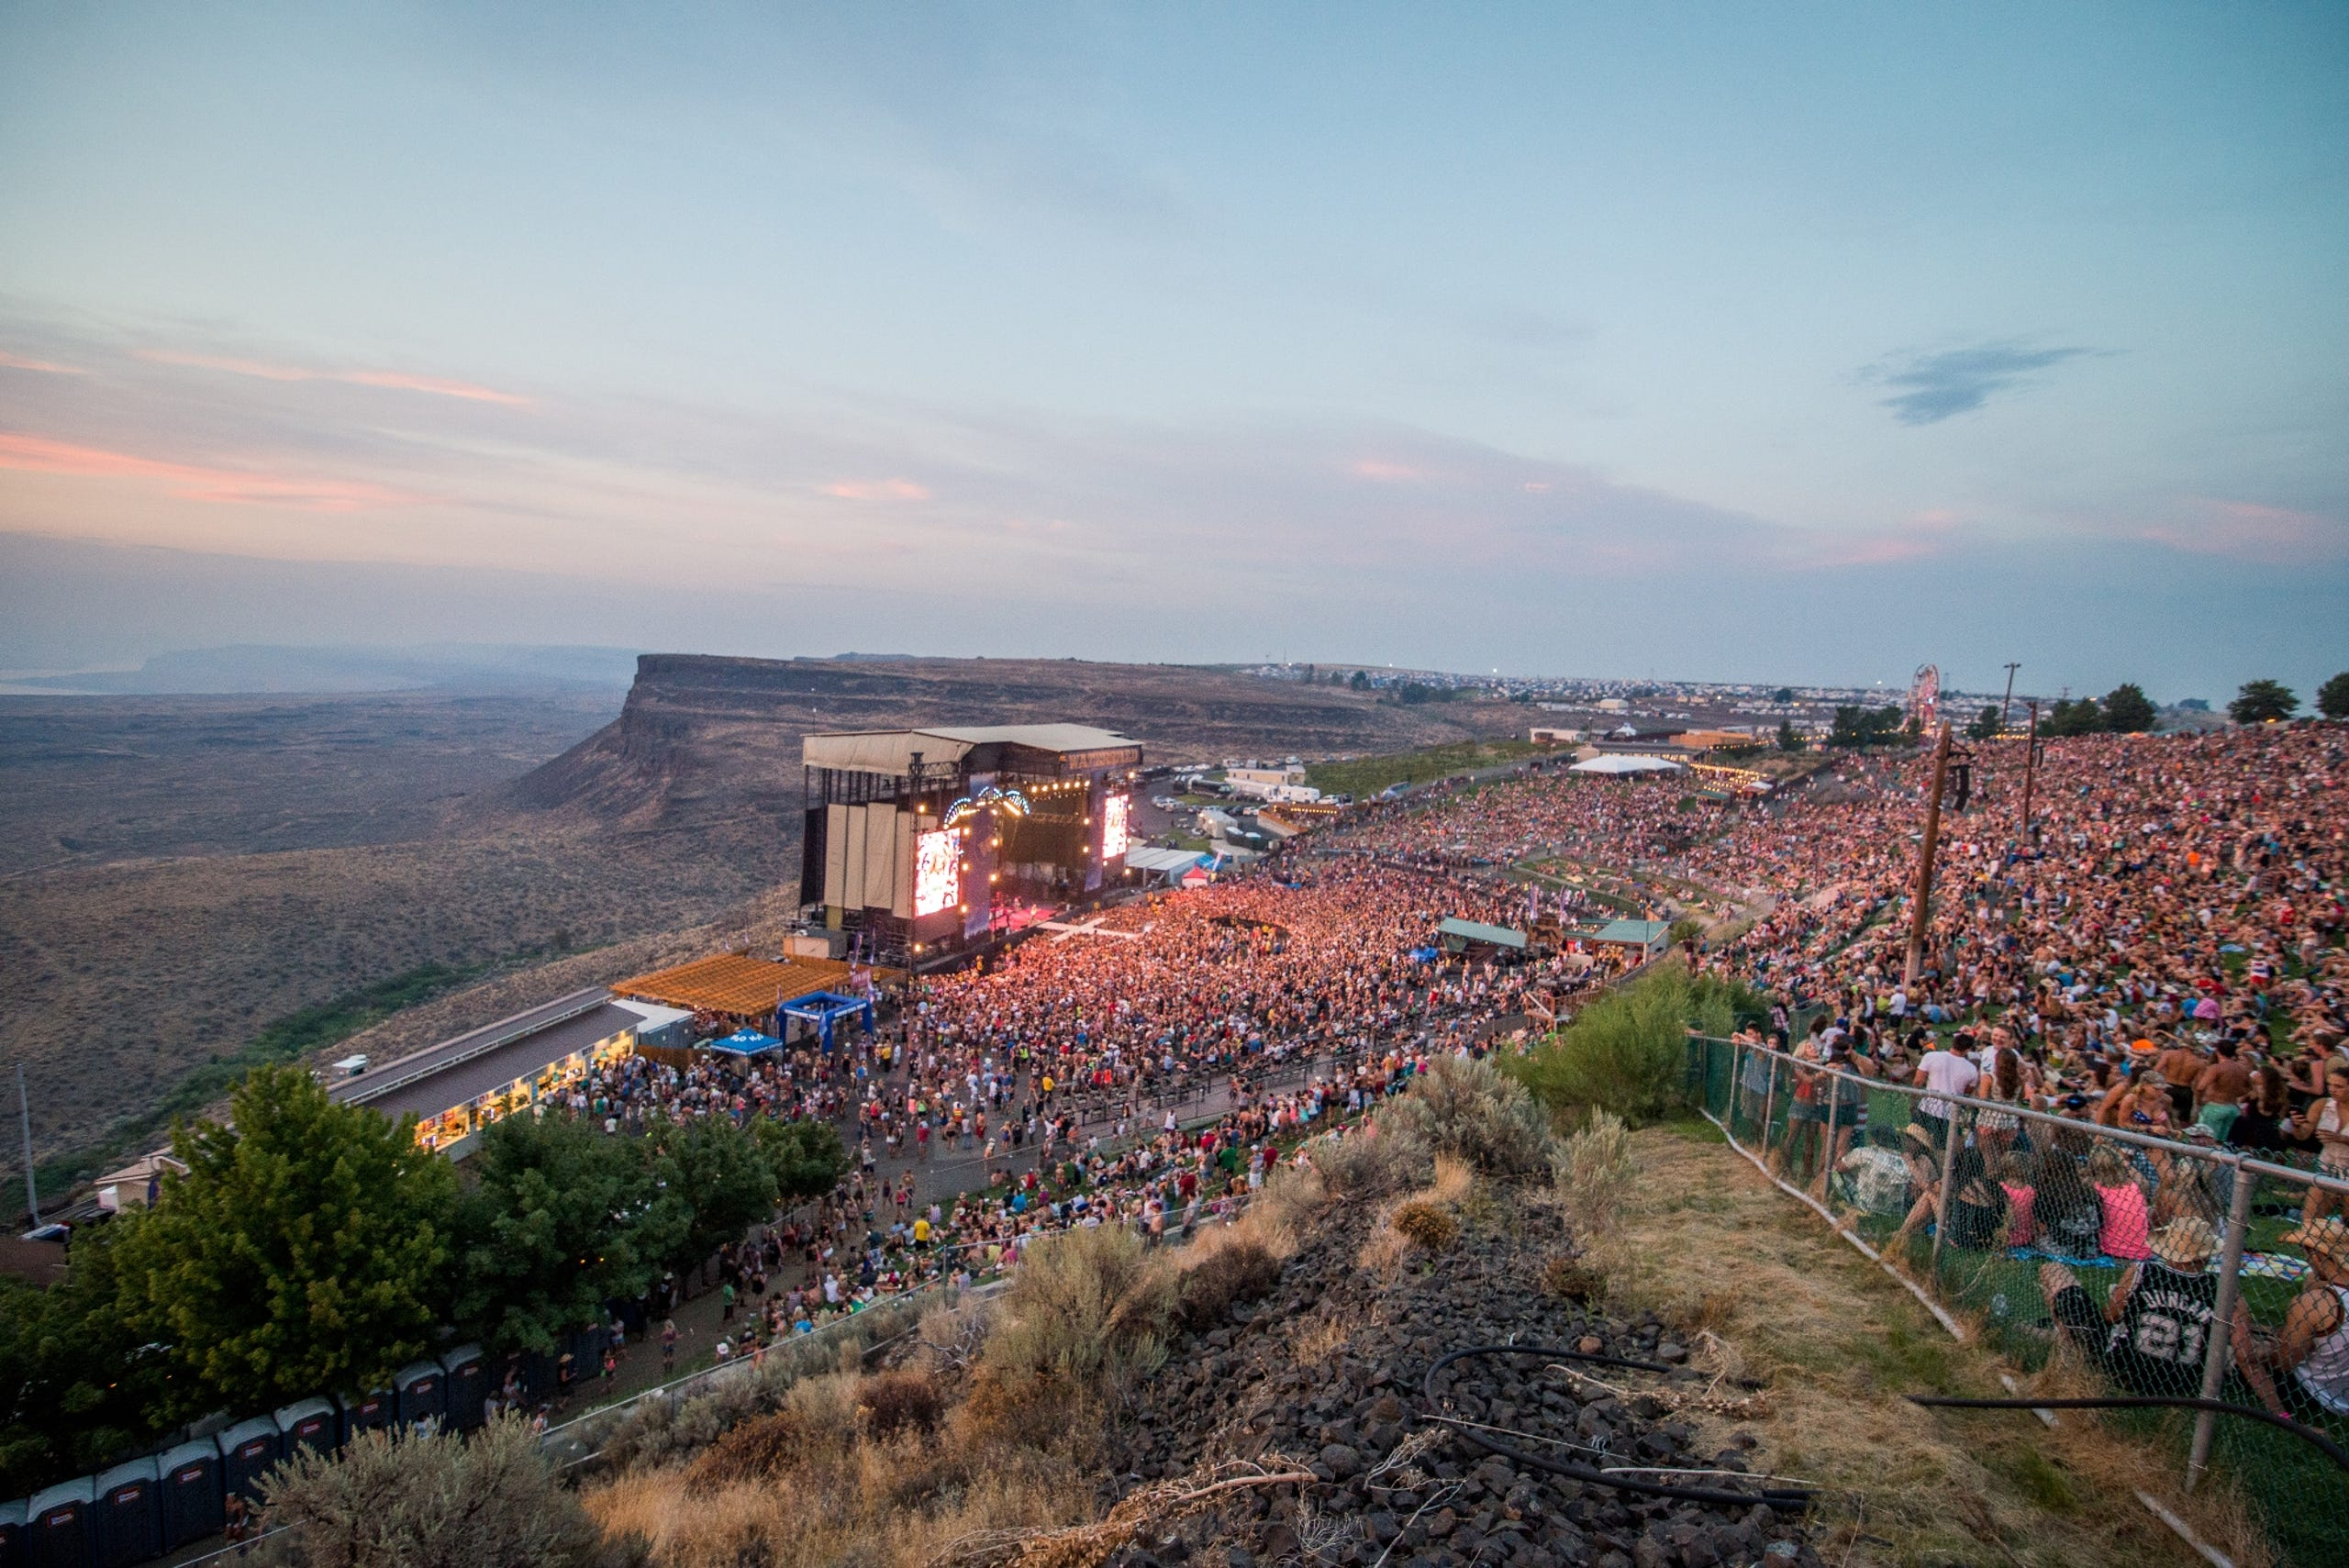 <strong>Quincy, Washington:</strong> The Gorge Amphitheater in Quincy is a remote venue providing sweeping views of the Columbia River and the evening stars.